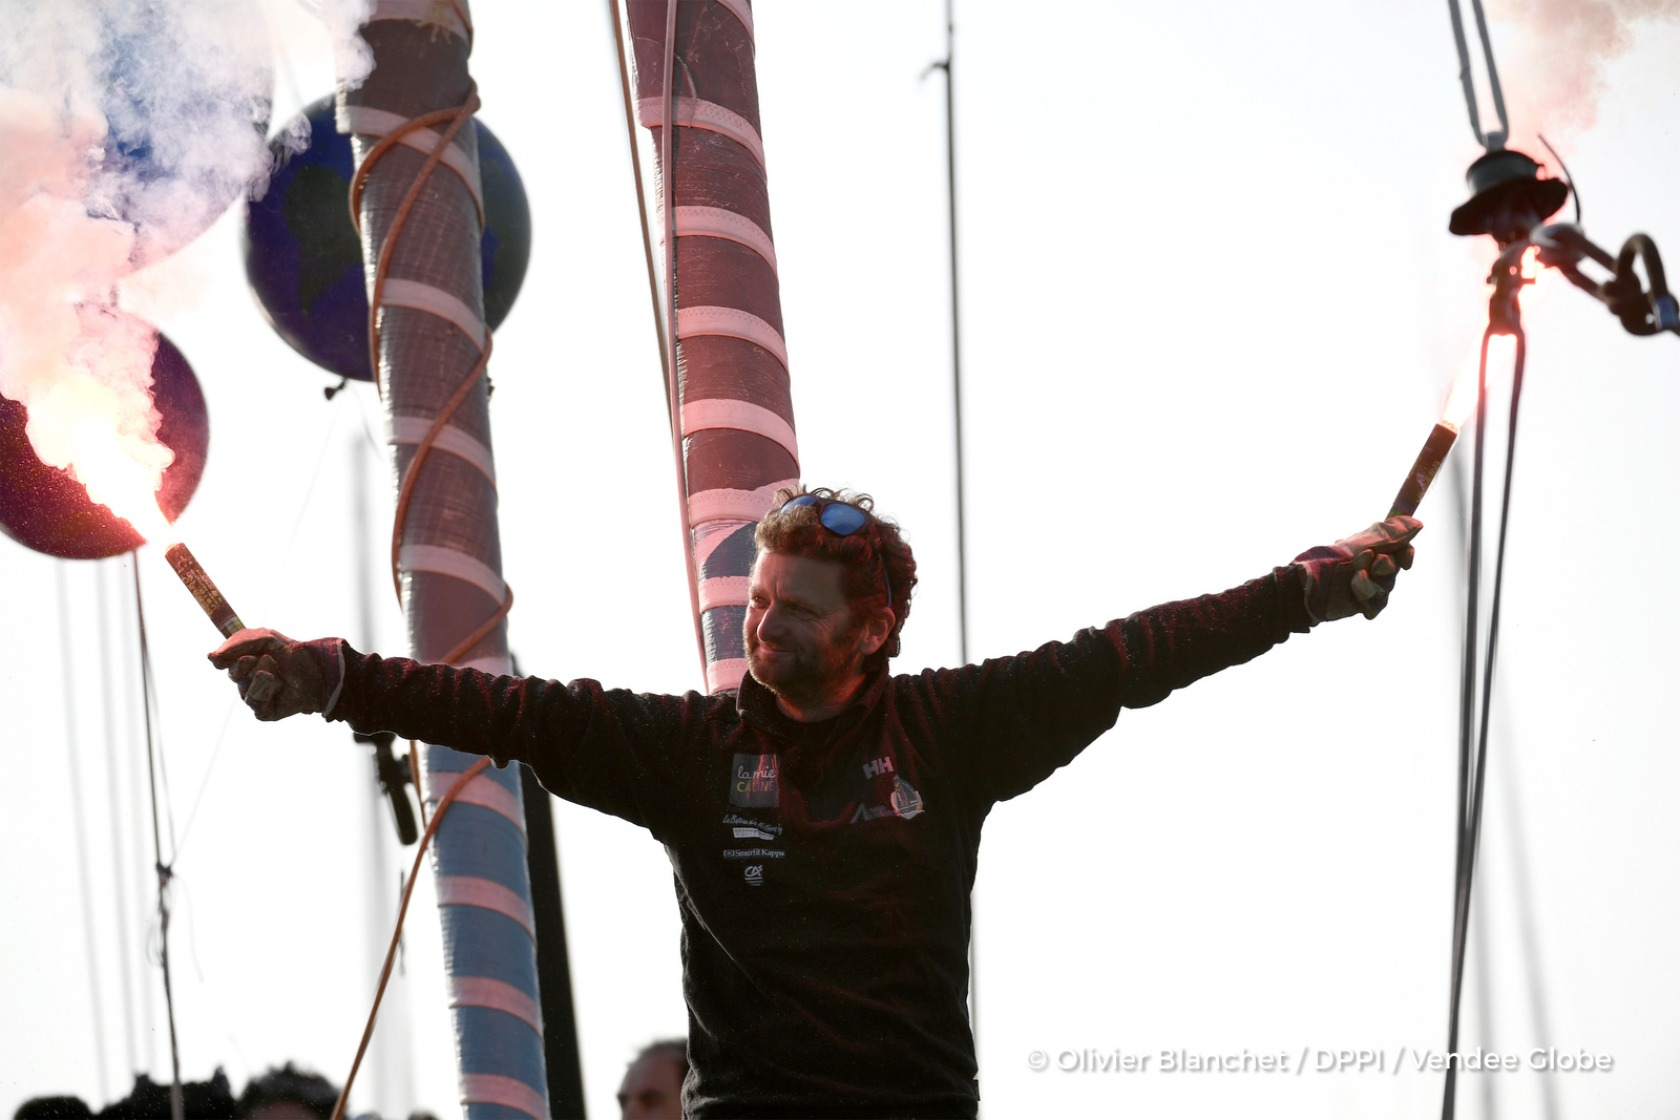 Ambiance channel with flares during Finish arrival of Arnaud Boissieres (FRA), skipper La Mie Caline, 10th of the sailing circumnavigation solo race Vendee Globe, in Les Sables d'Olonne, France, on February 17th, 2017 - Photo Olivier Blanchet / DPPI / Vendee Globe